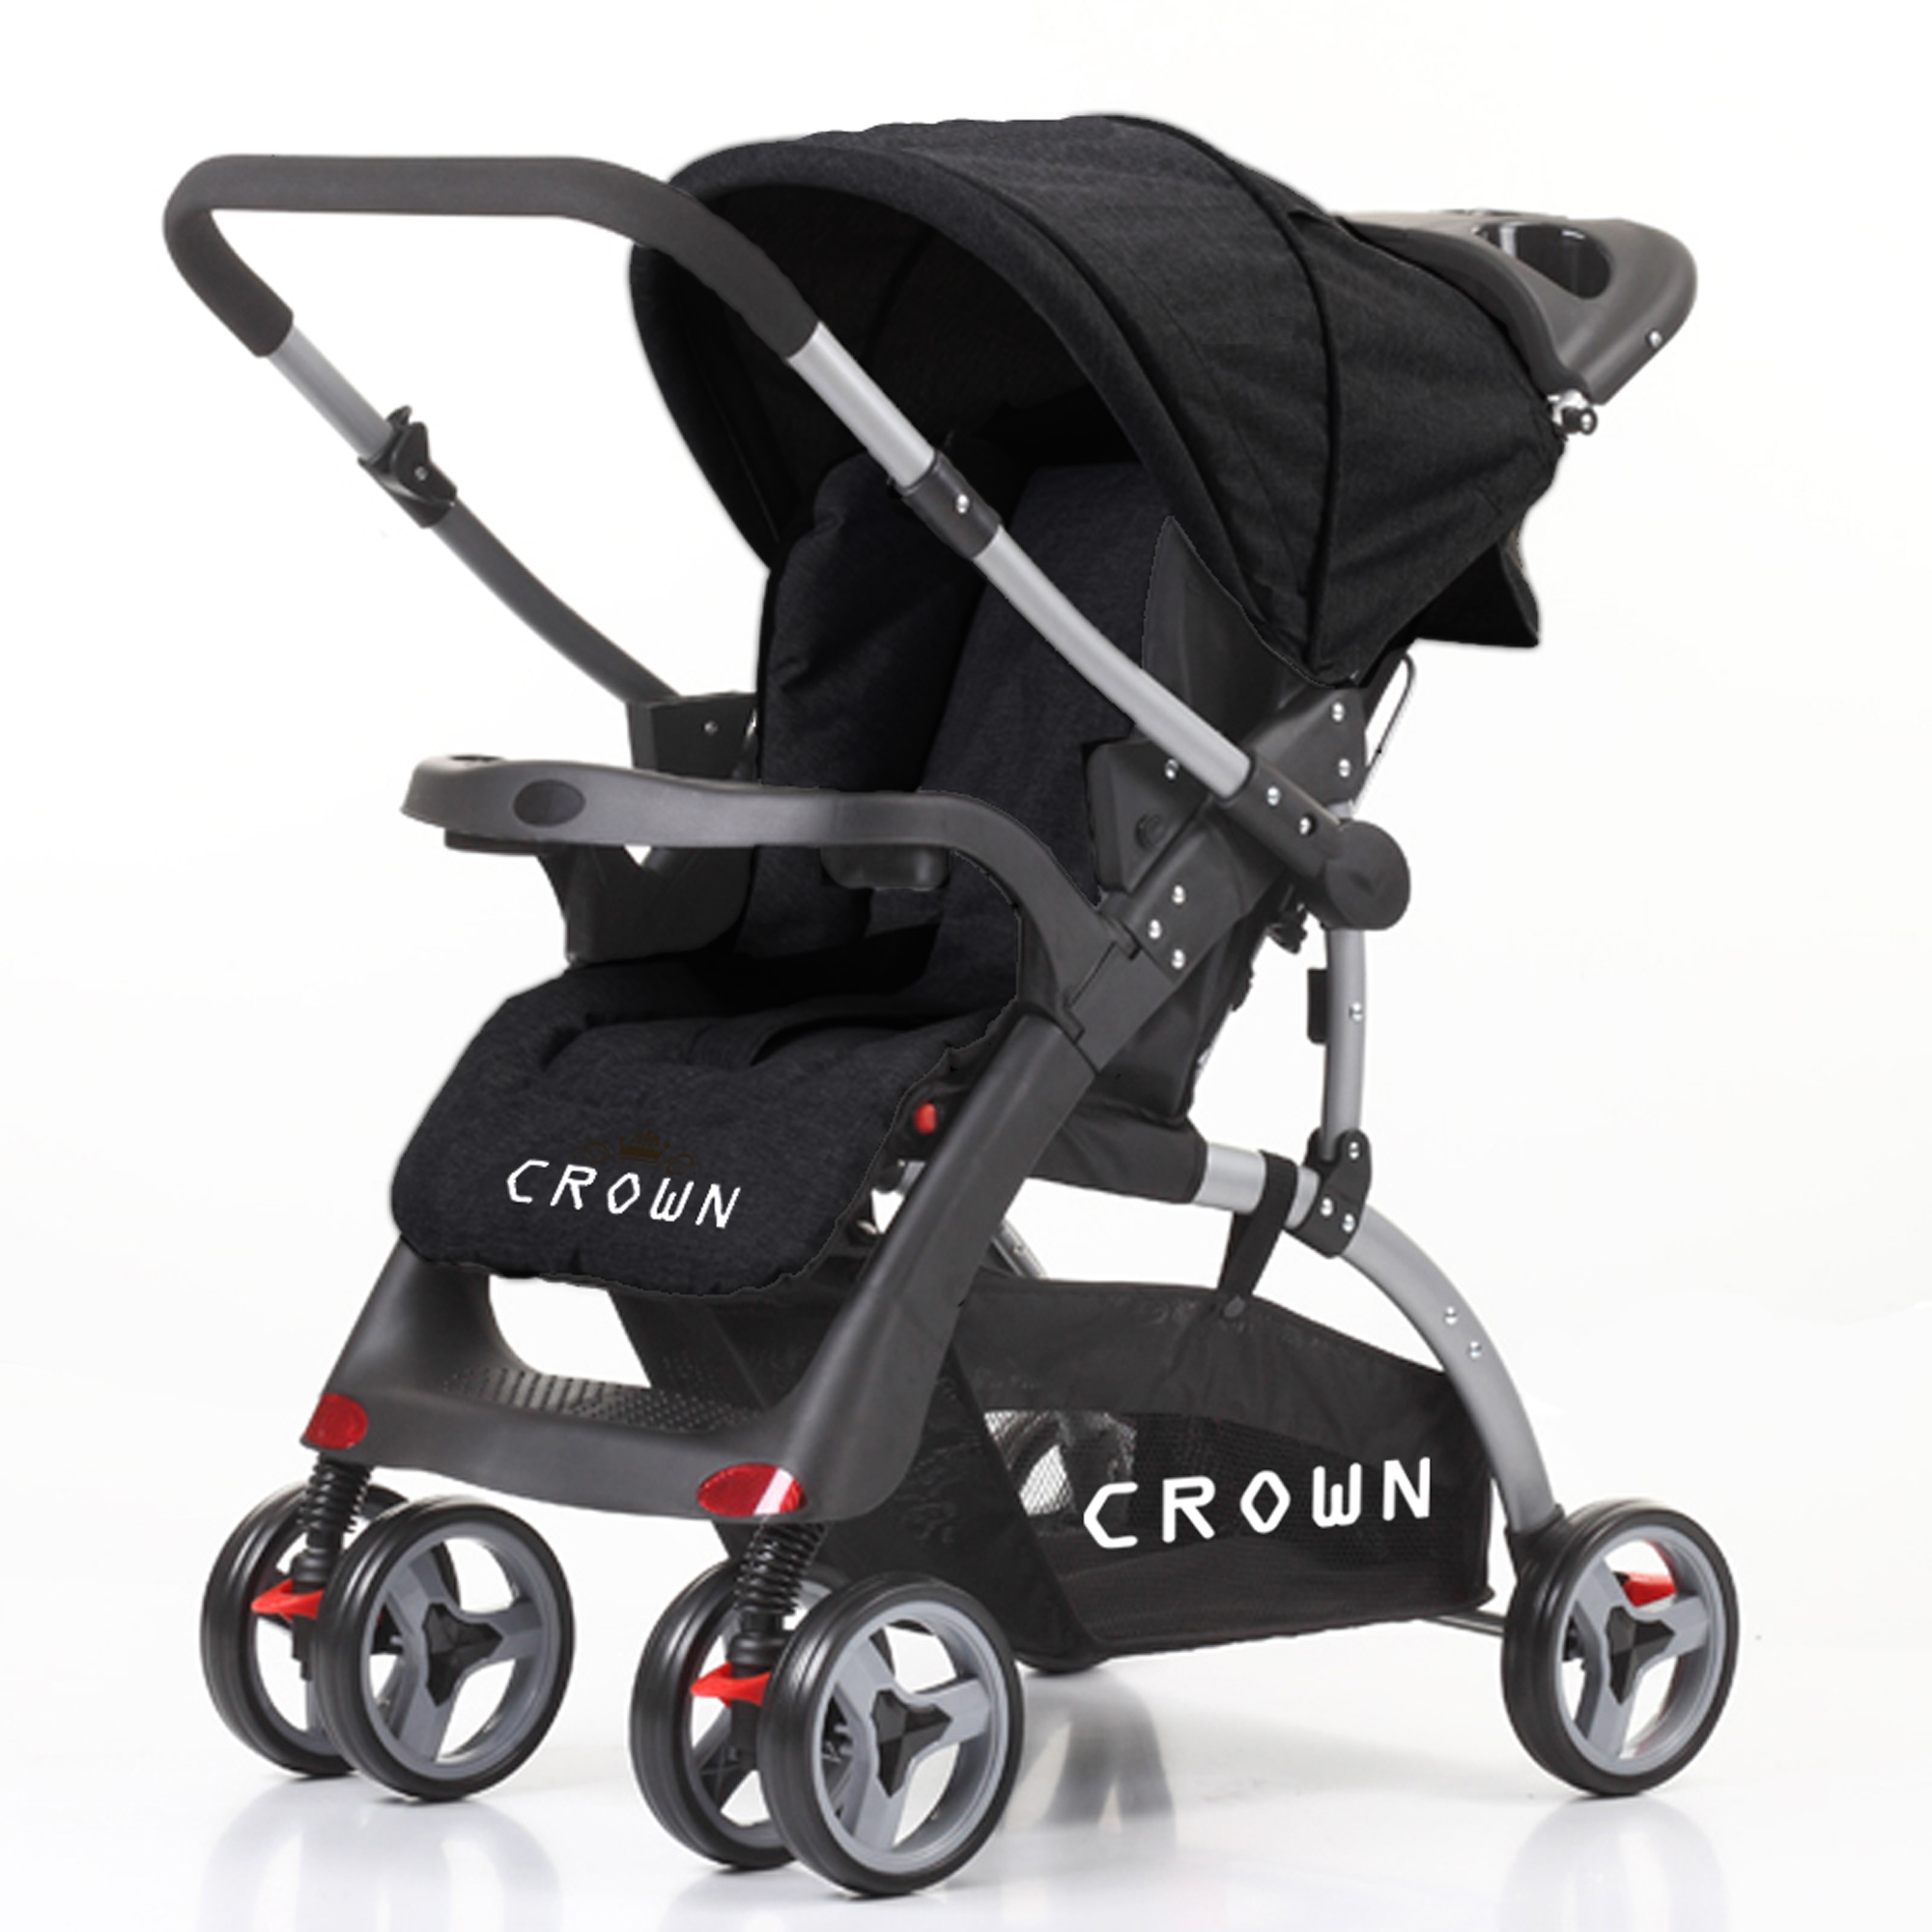 crown st530 buggy kinderwagen dual way grau kinderwagen buggy. Black Bedroom Furniture Sets. Home Design Ideas